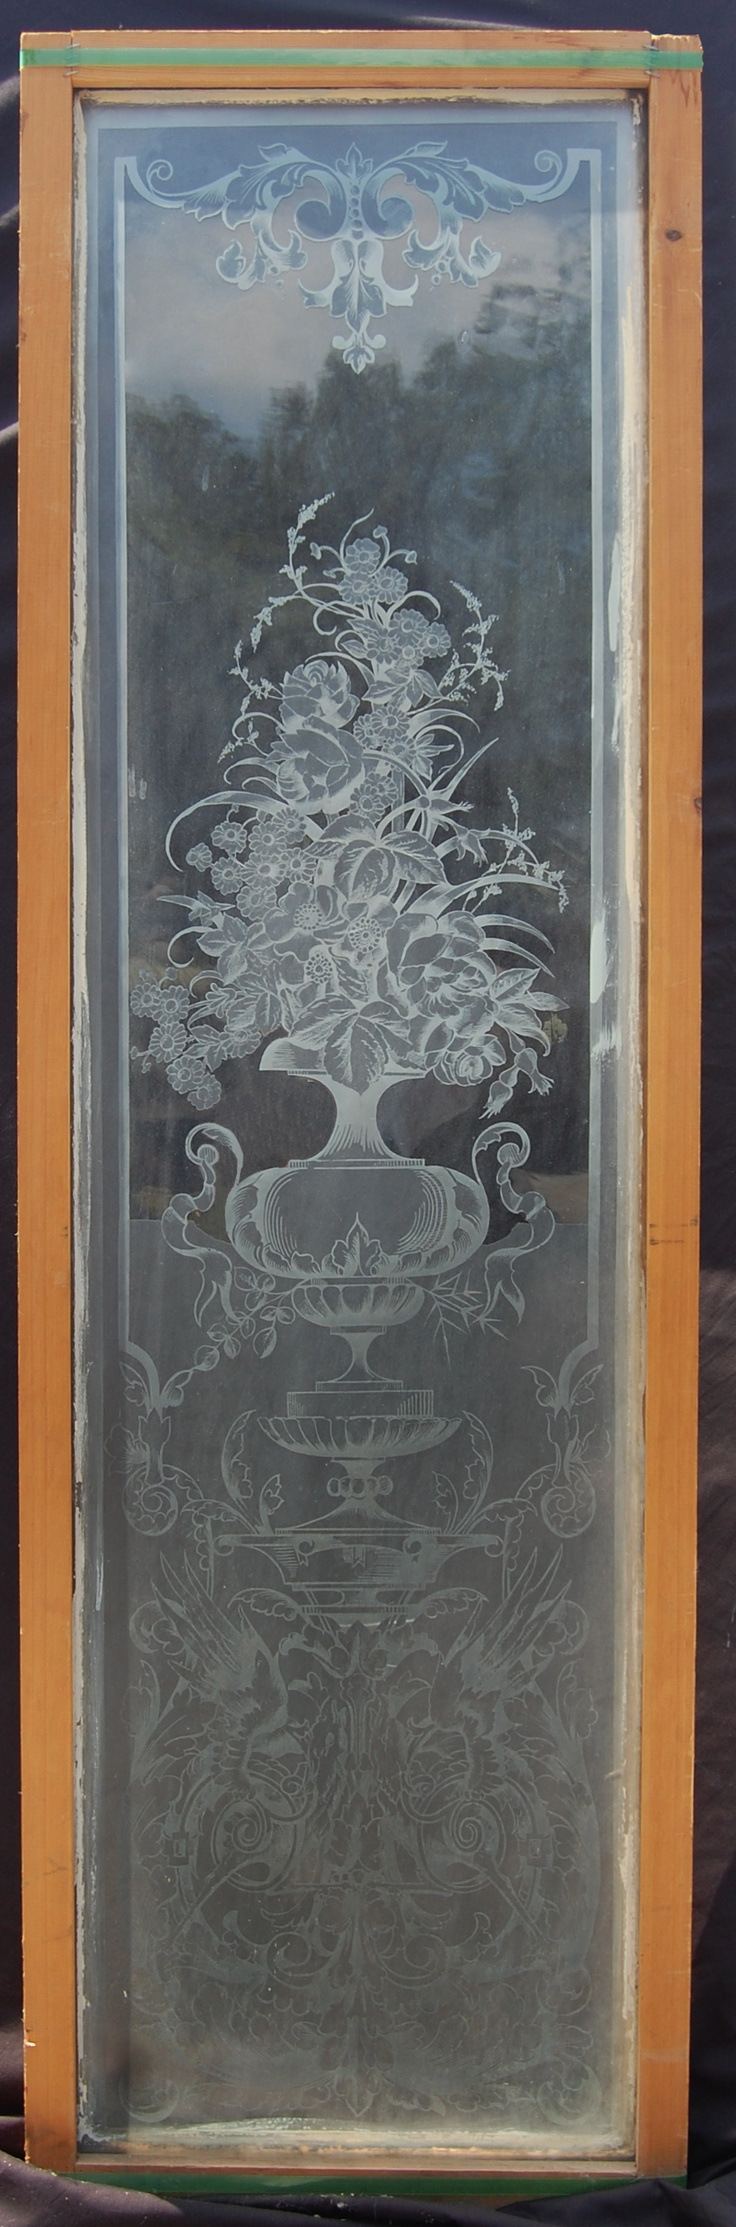 14 best etched glass images on pinterest etched glass glass door panel eventelaan Images